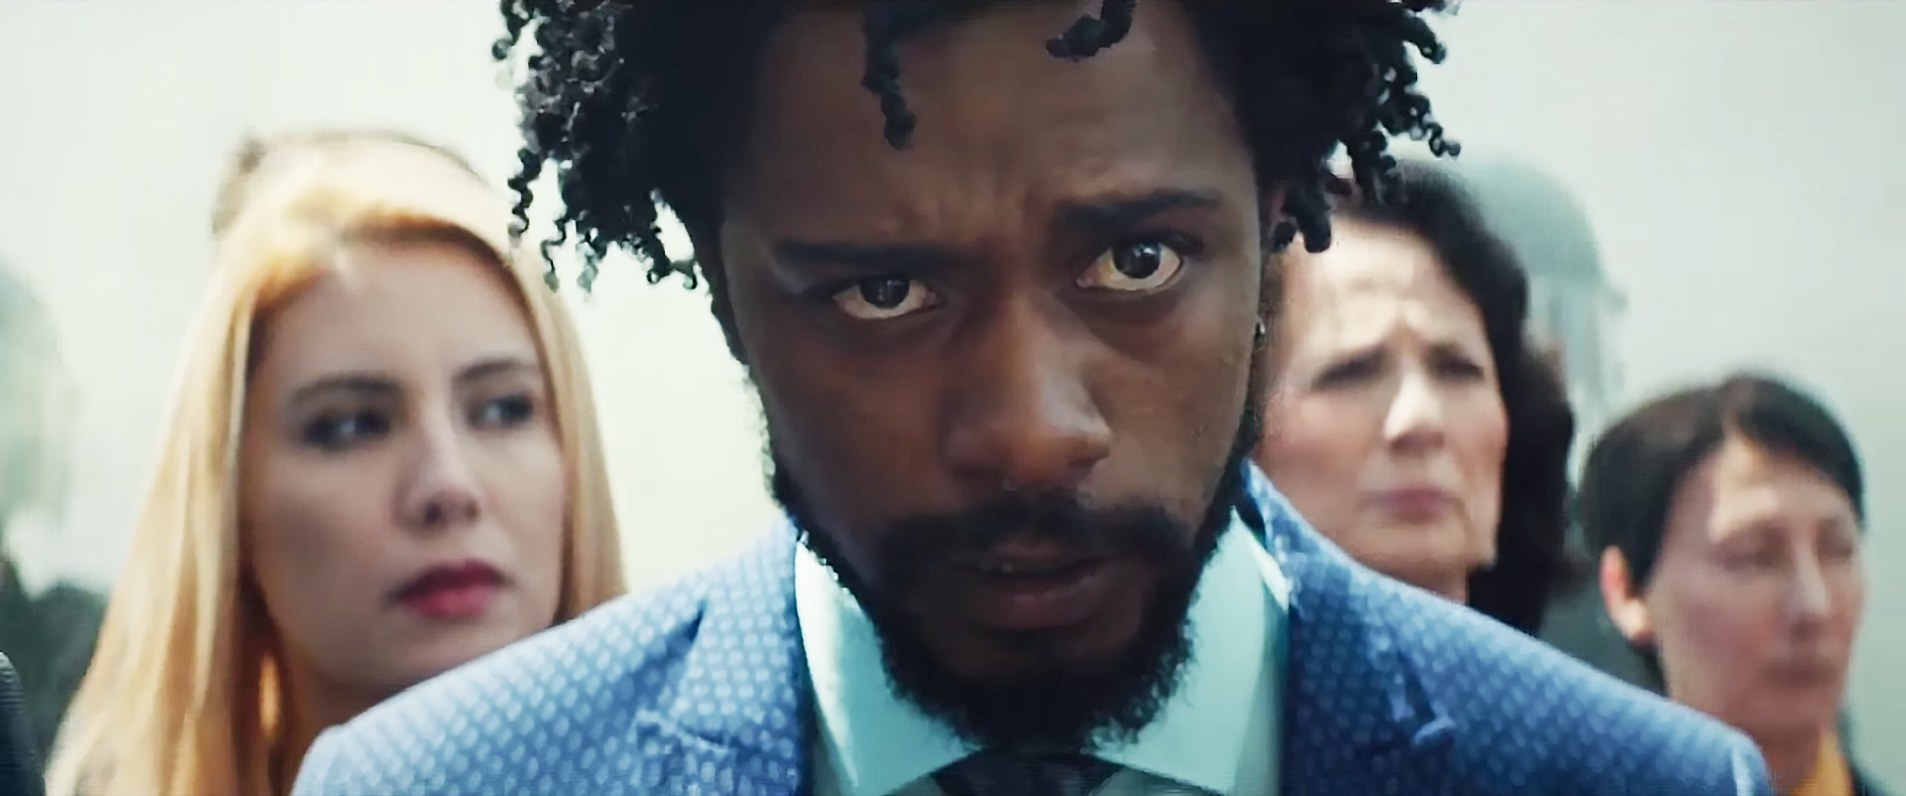 E uscito il trailer di Sorry to Bother you | Collater.al 1